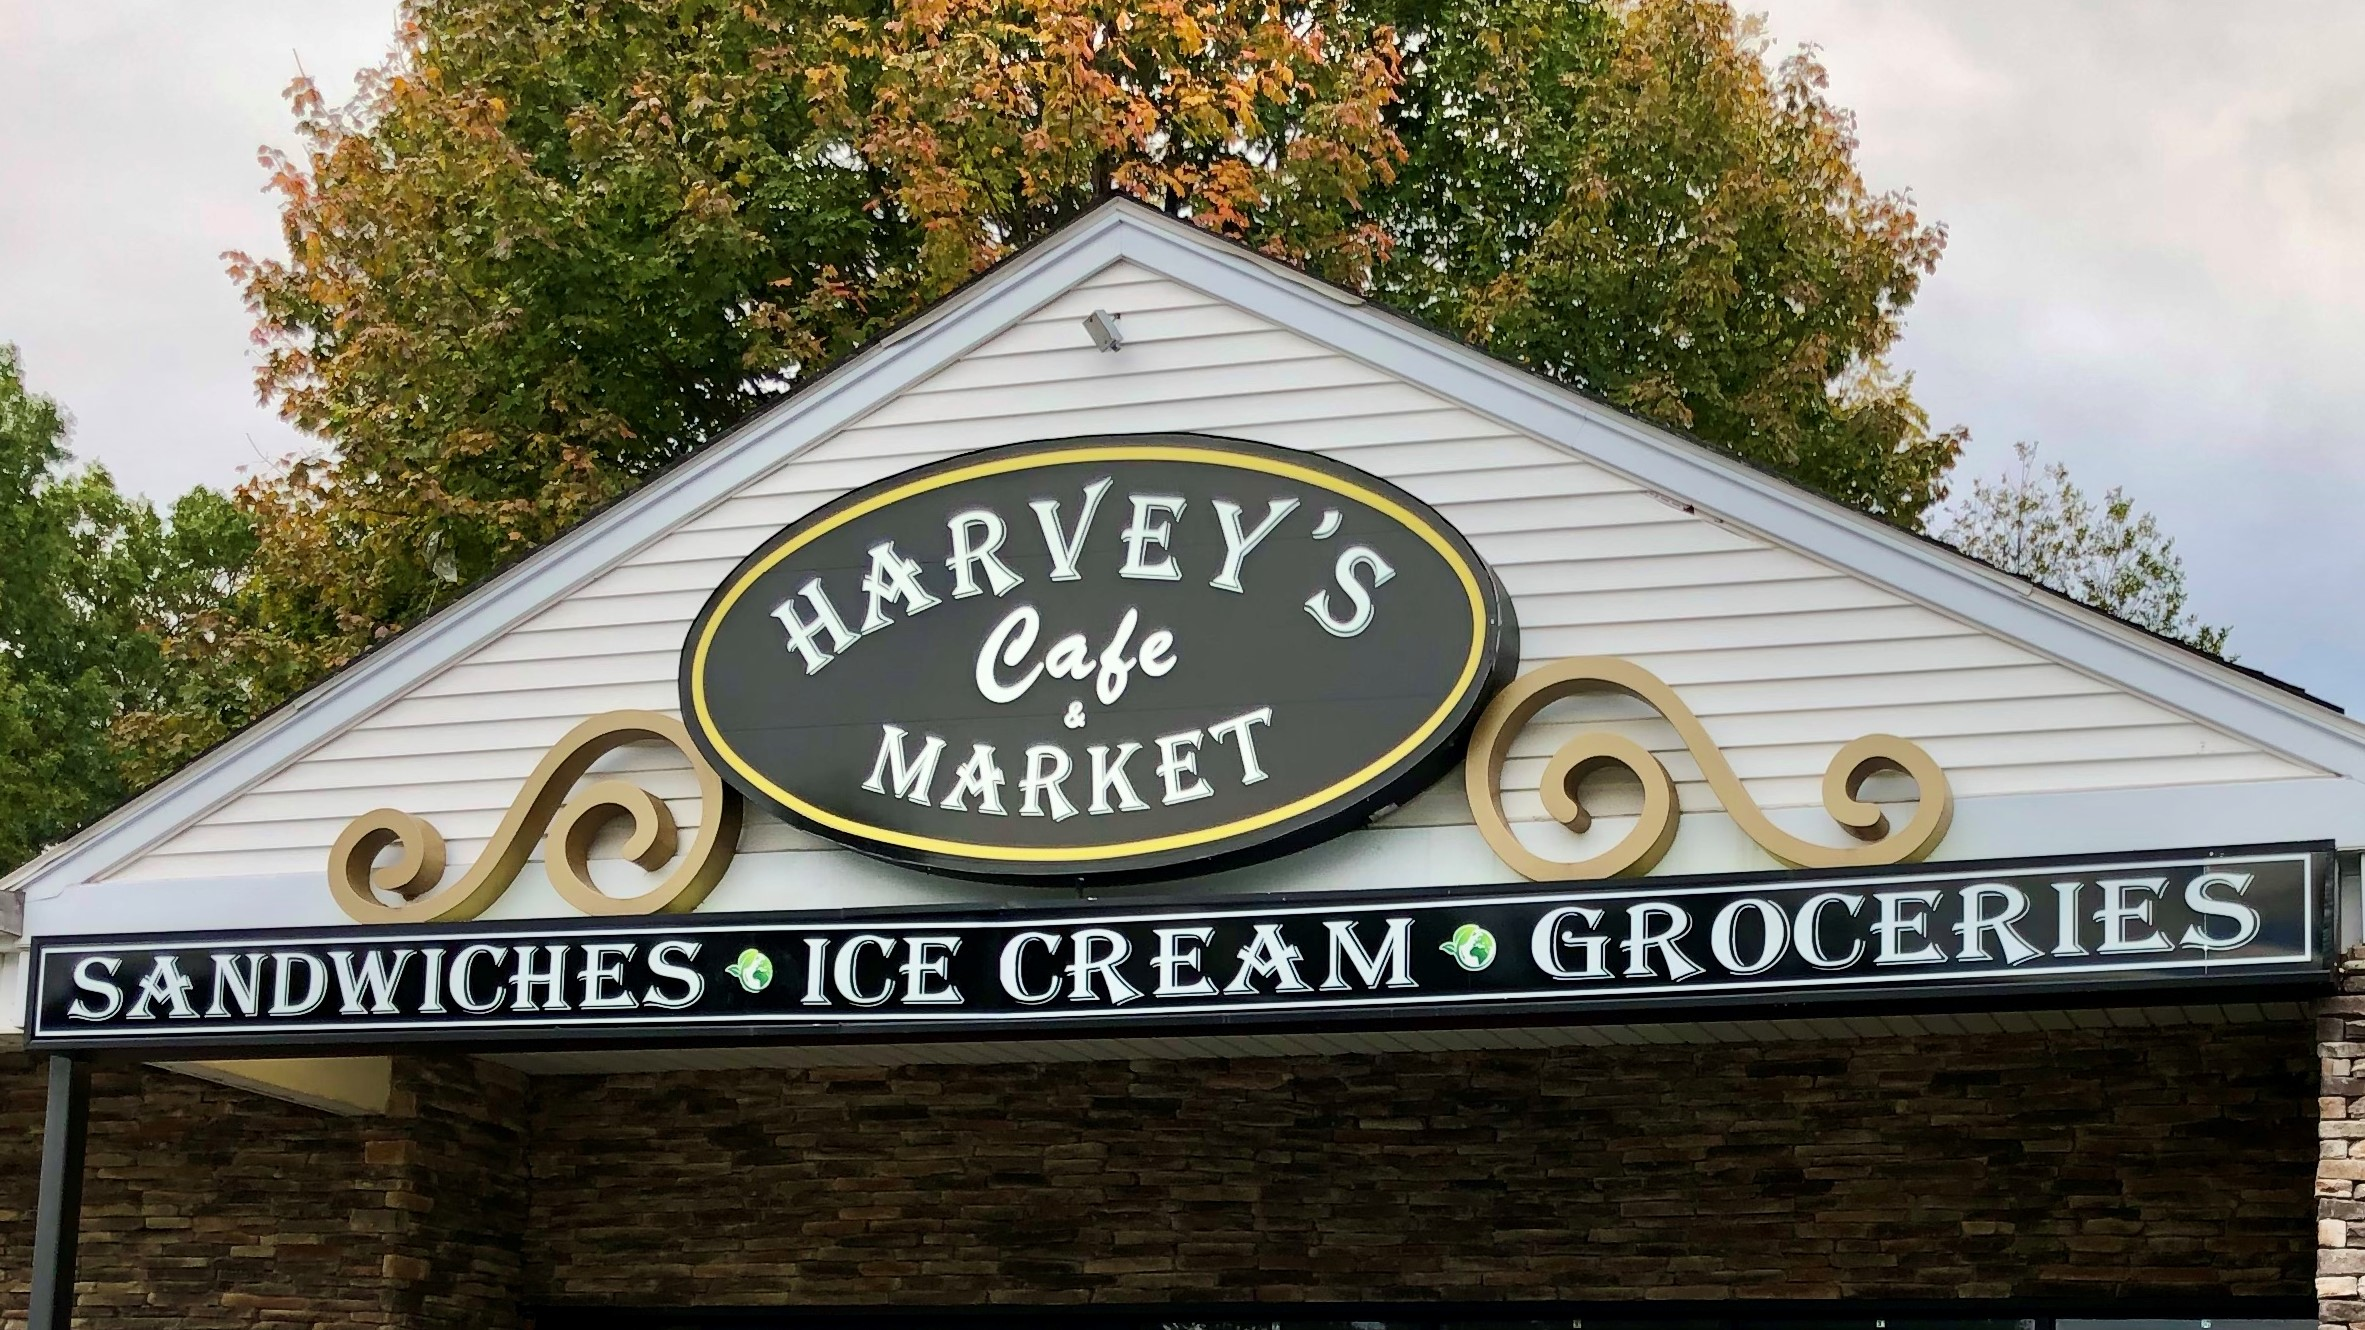 Harvey's Cafe and Market